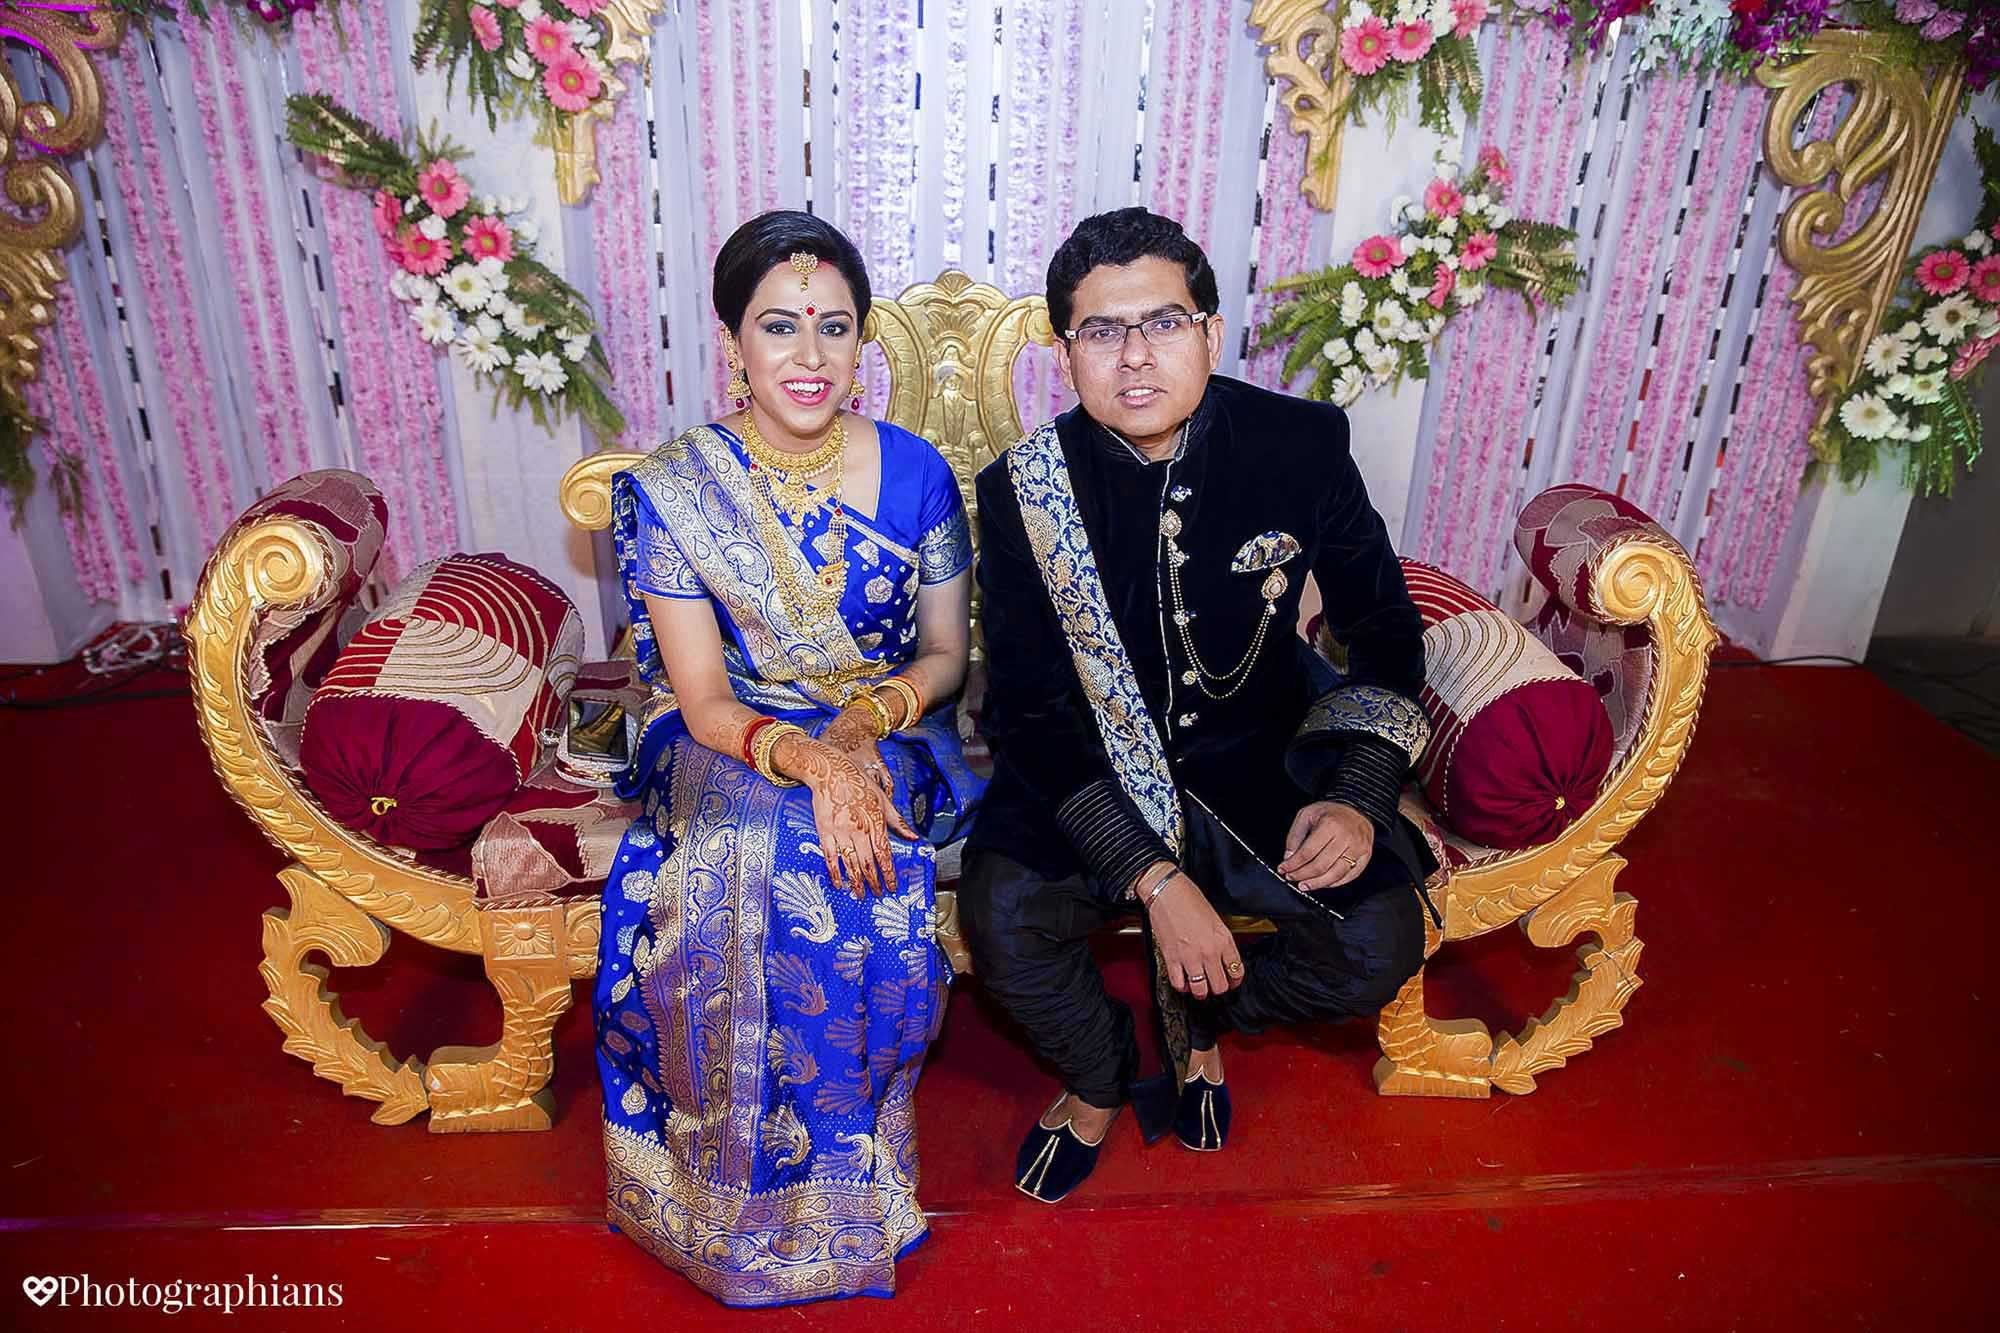 Bengali_Wedding_Photography_Kolkata_Photographians_180